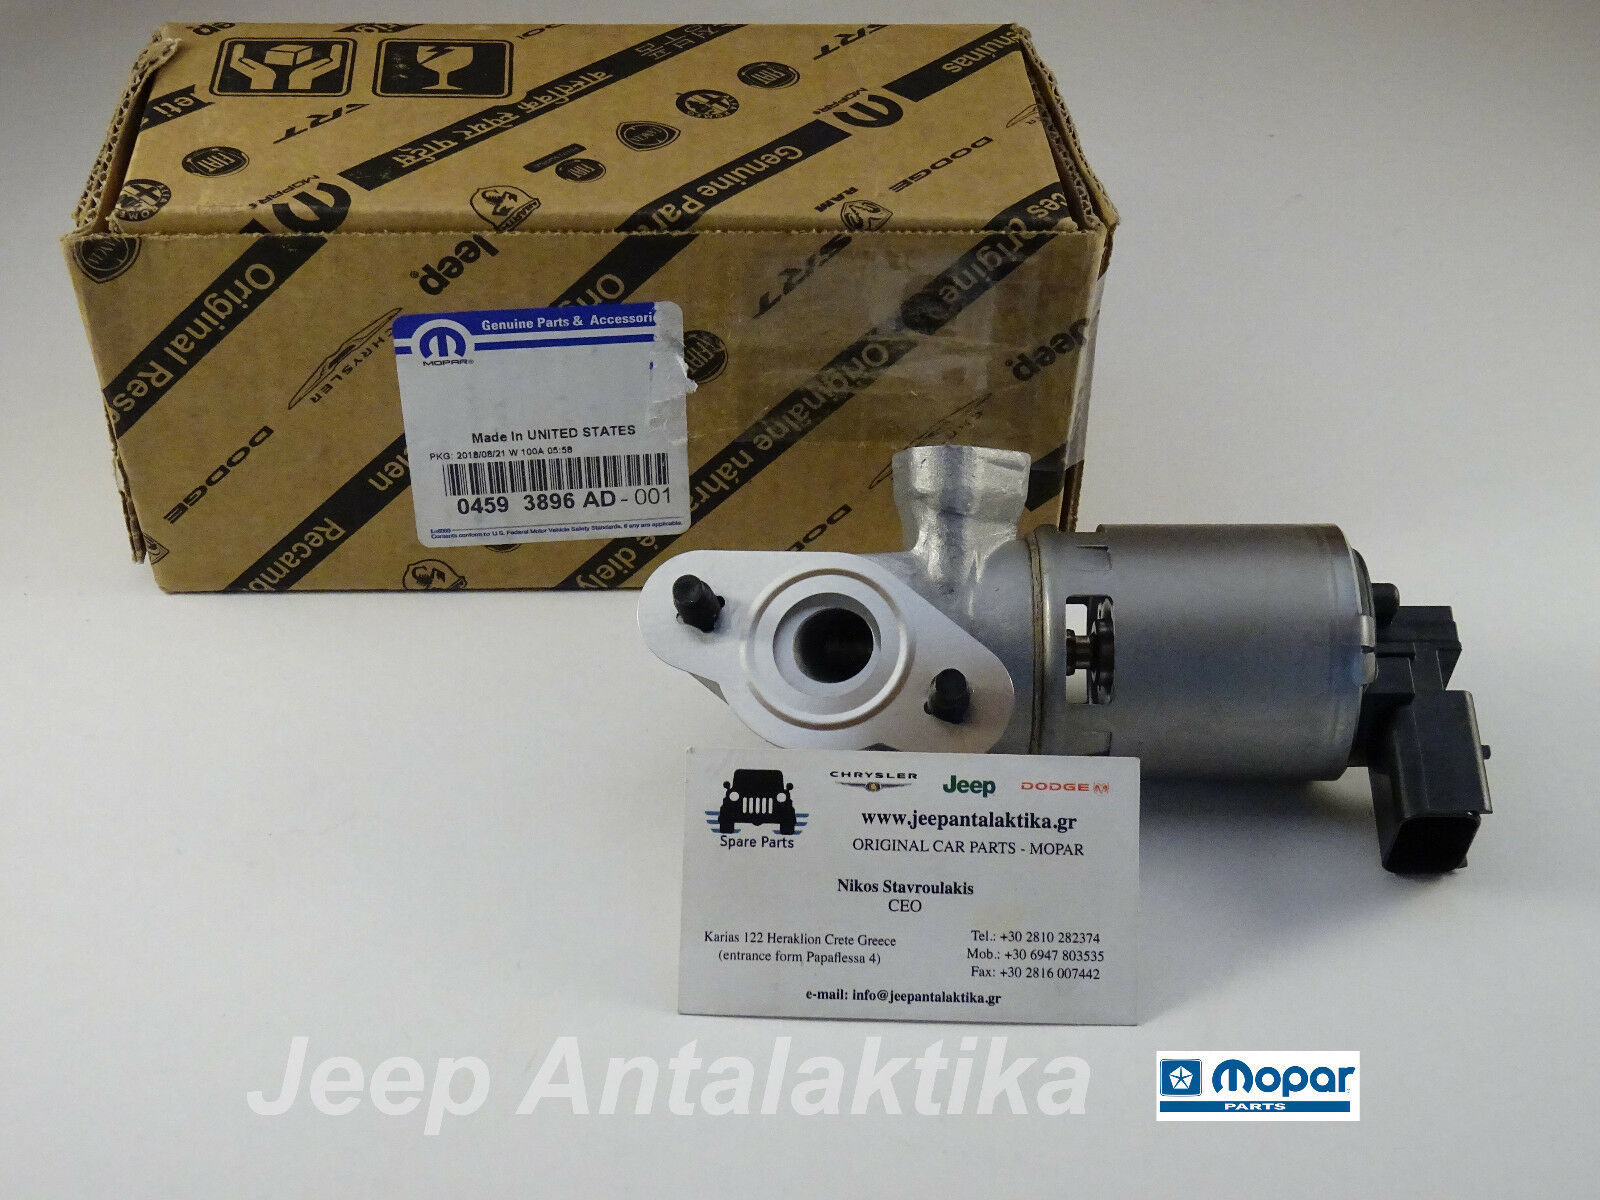 JEEP Wrangler 2007-11 V6 3.8L Exhaust Gas Re-circulation EGR Valve 4593896AB